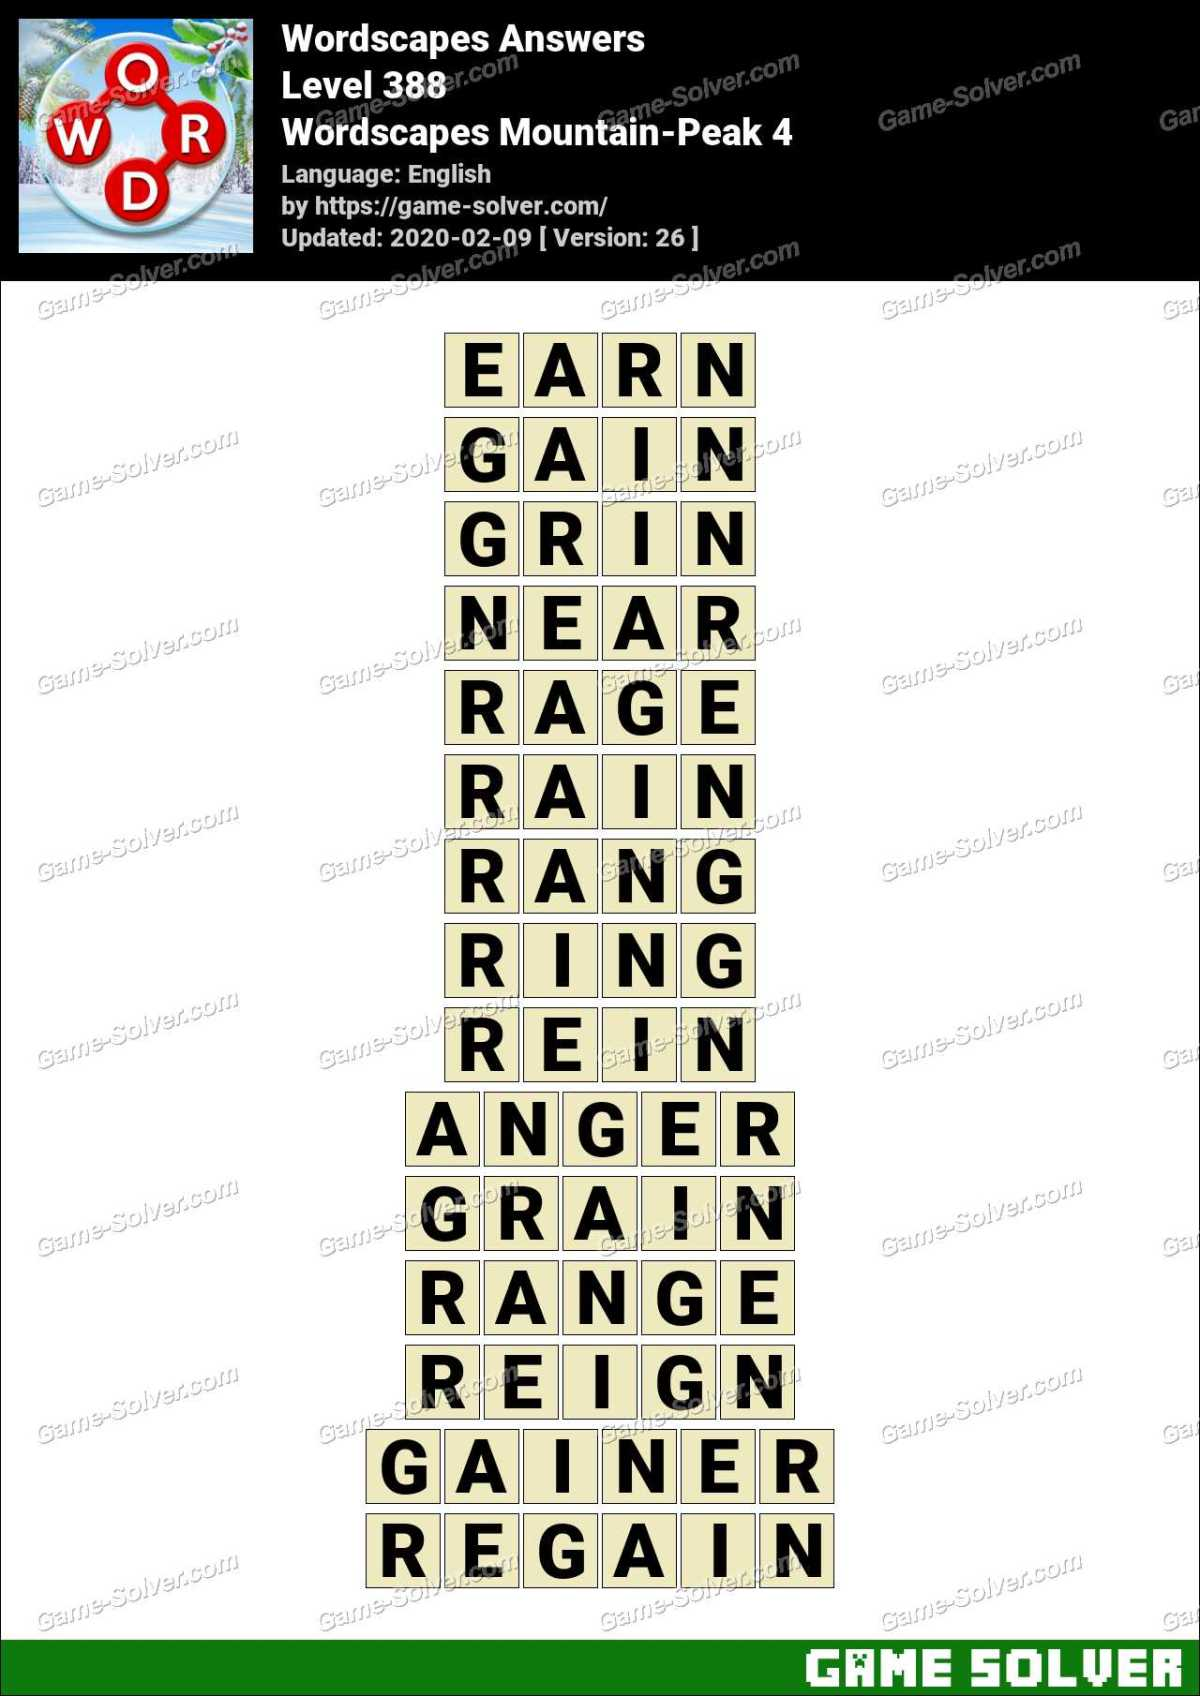 Wordscapes Mountain-Peak 4 Answers